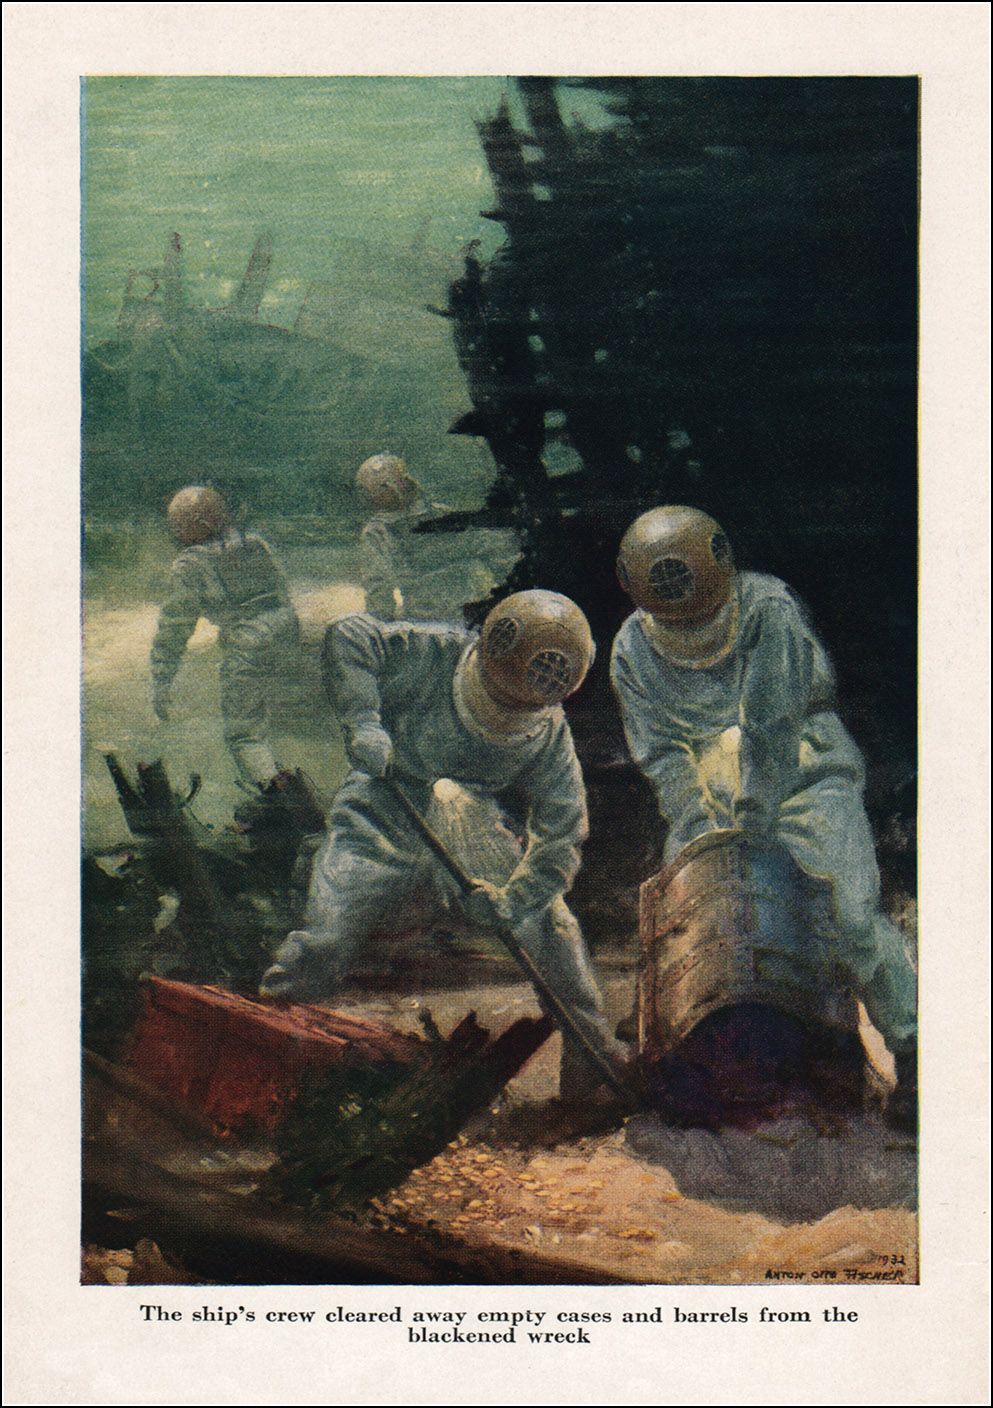 Anton Otto Fischer, Twenty Thousand Leagues under the Sea